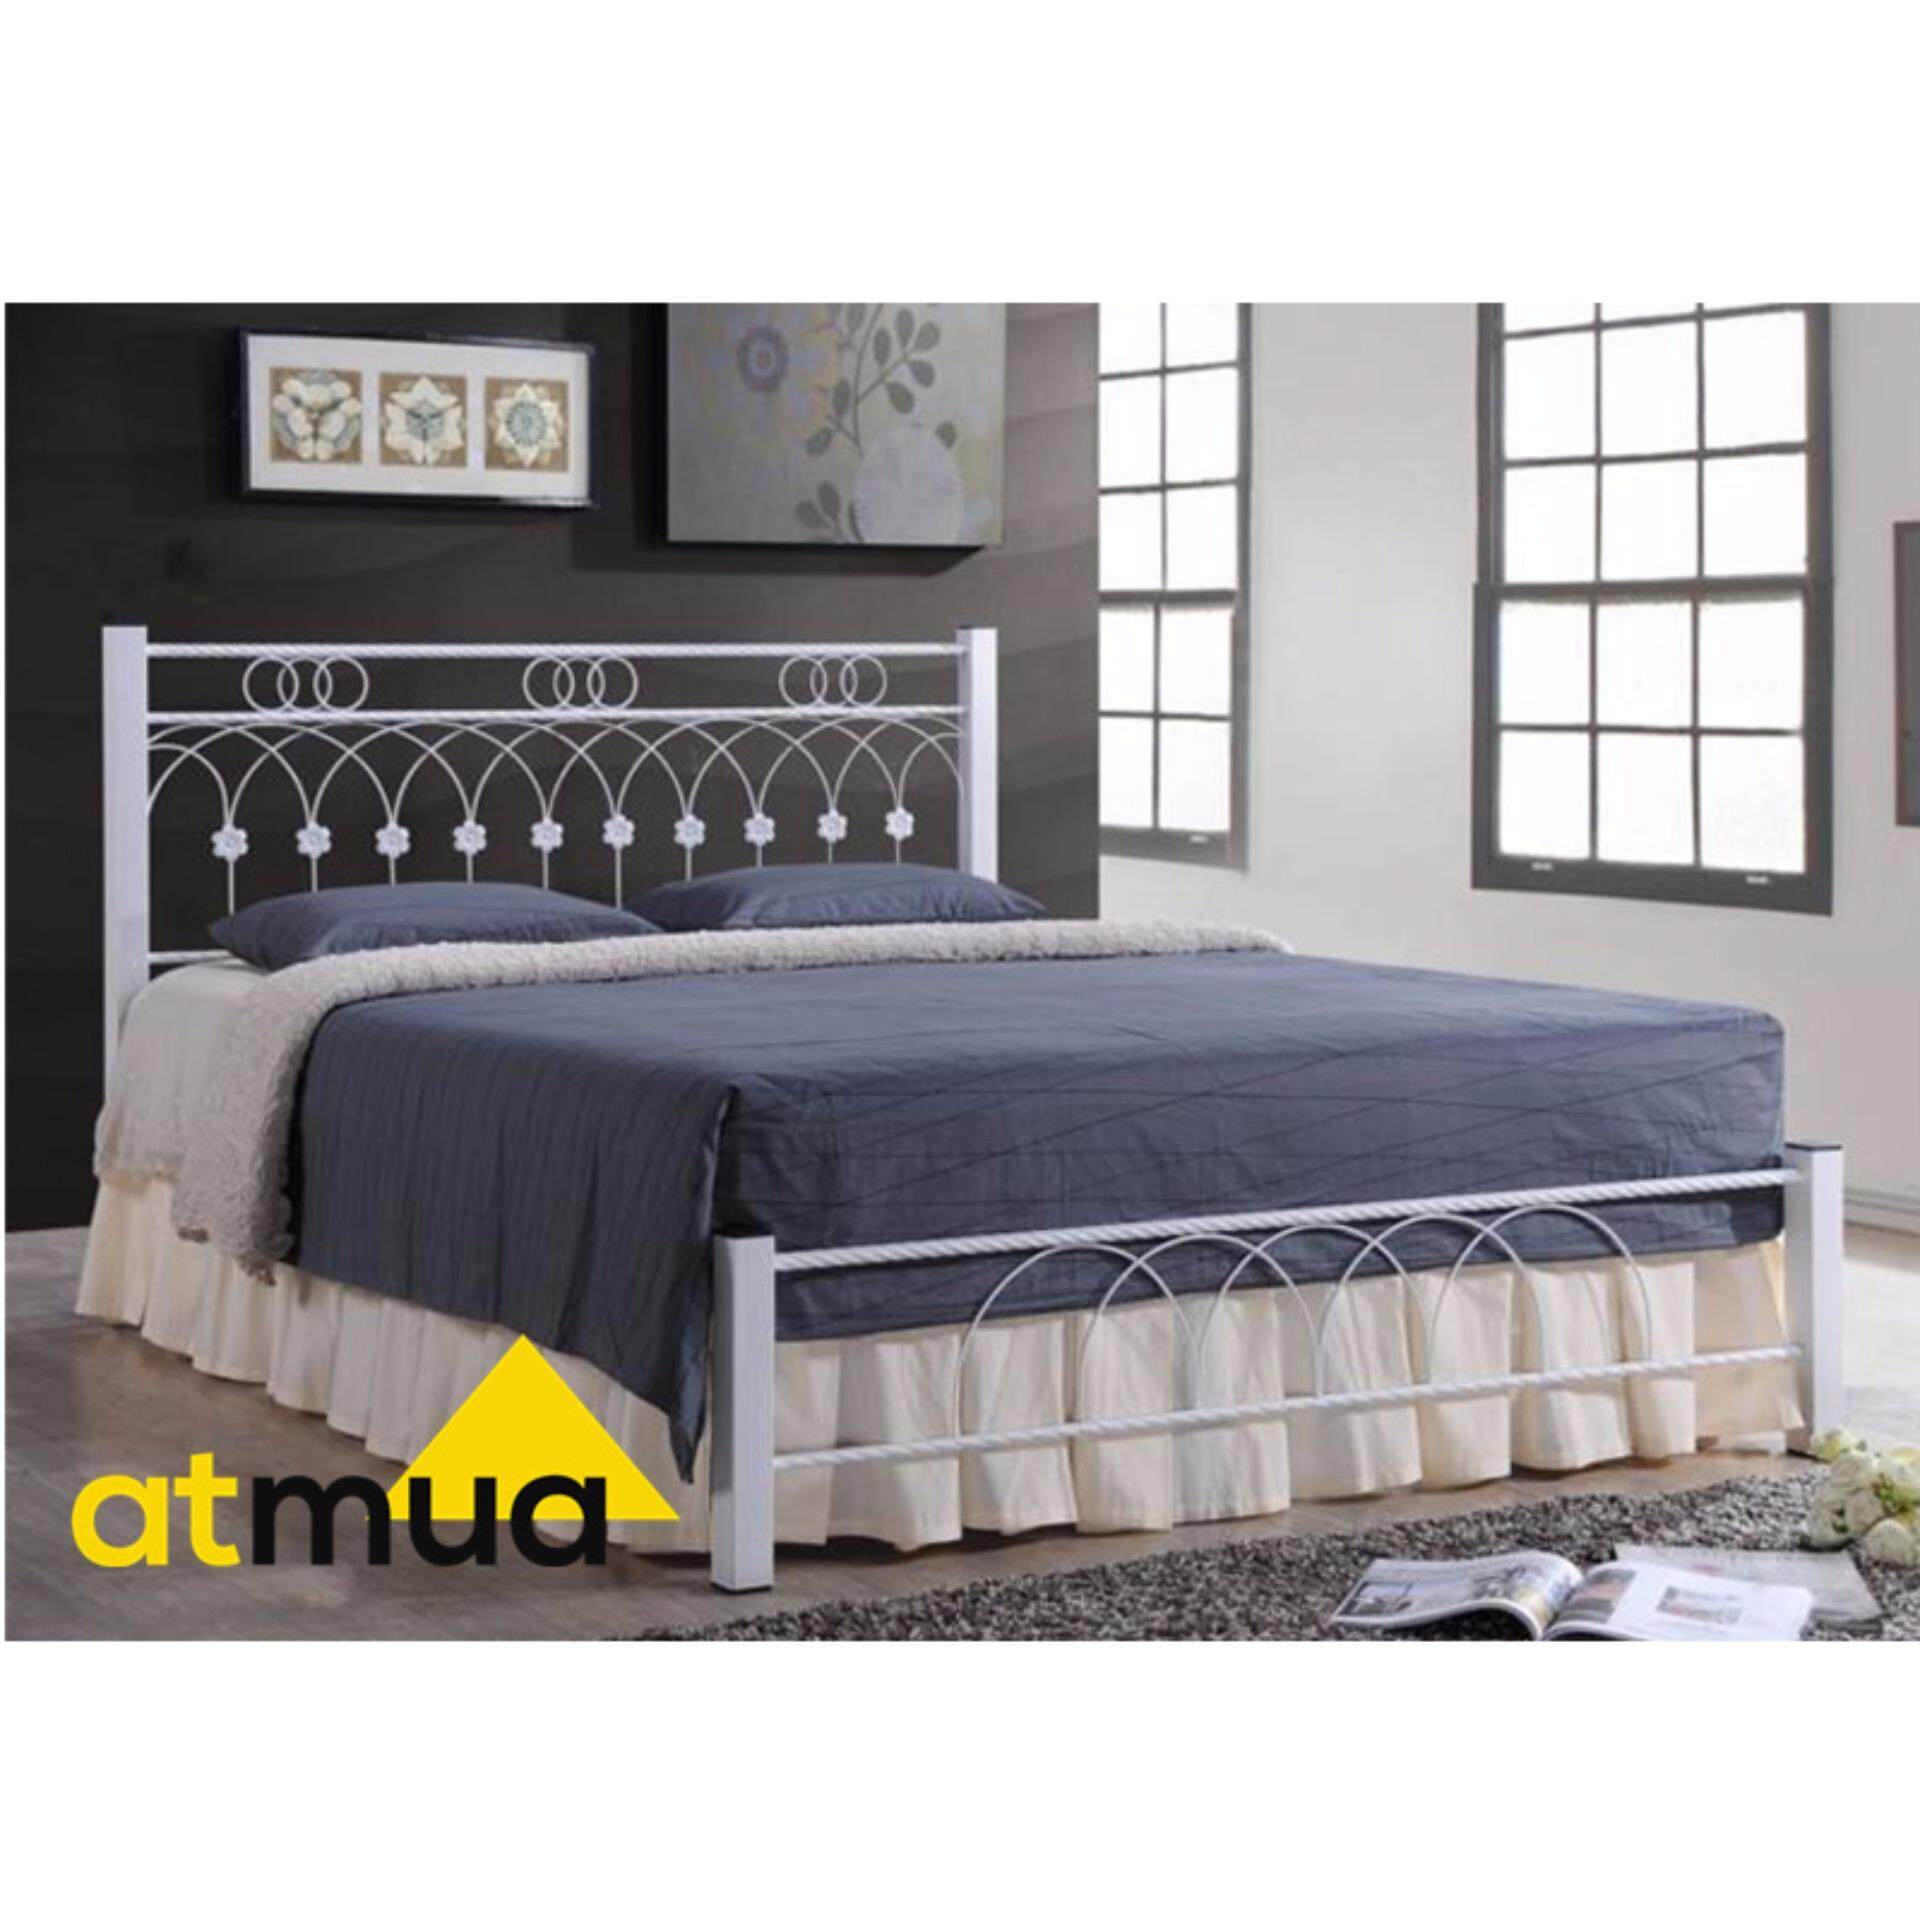 Atmua Sharon Metal Queen Size Bed Frame - Brown